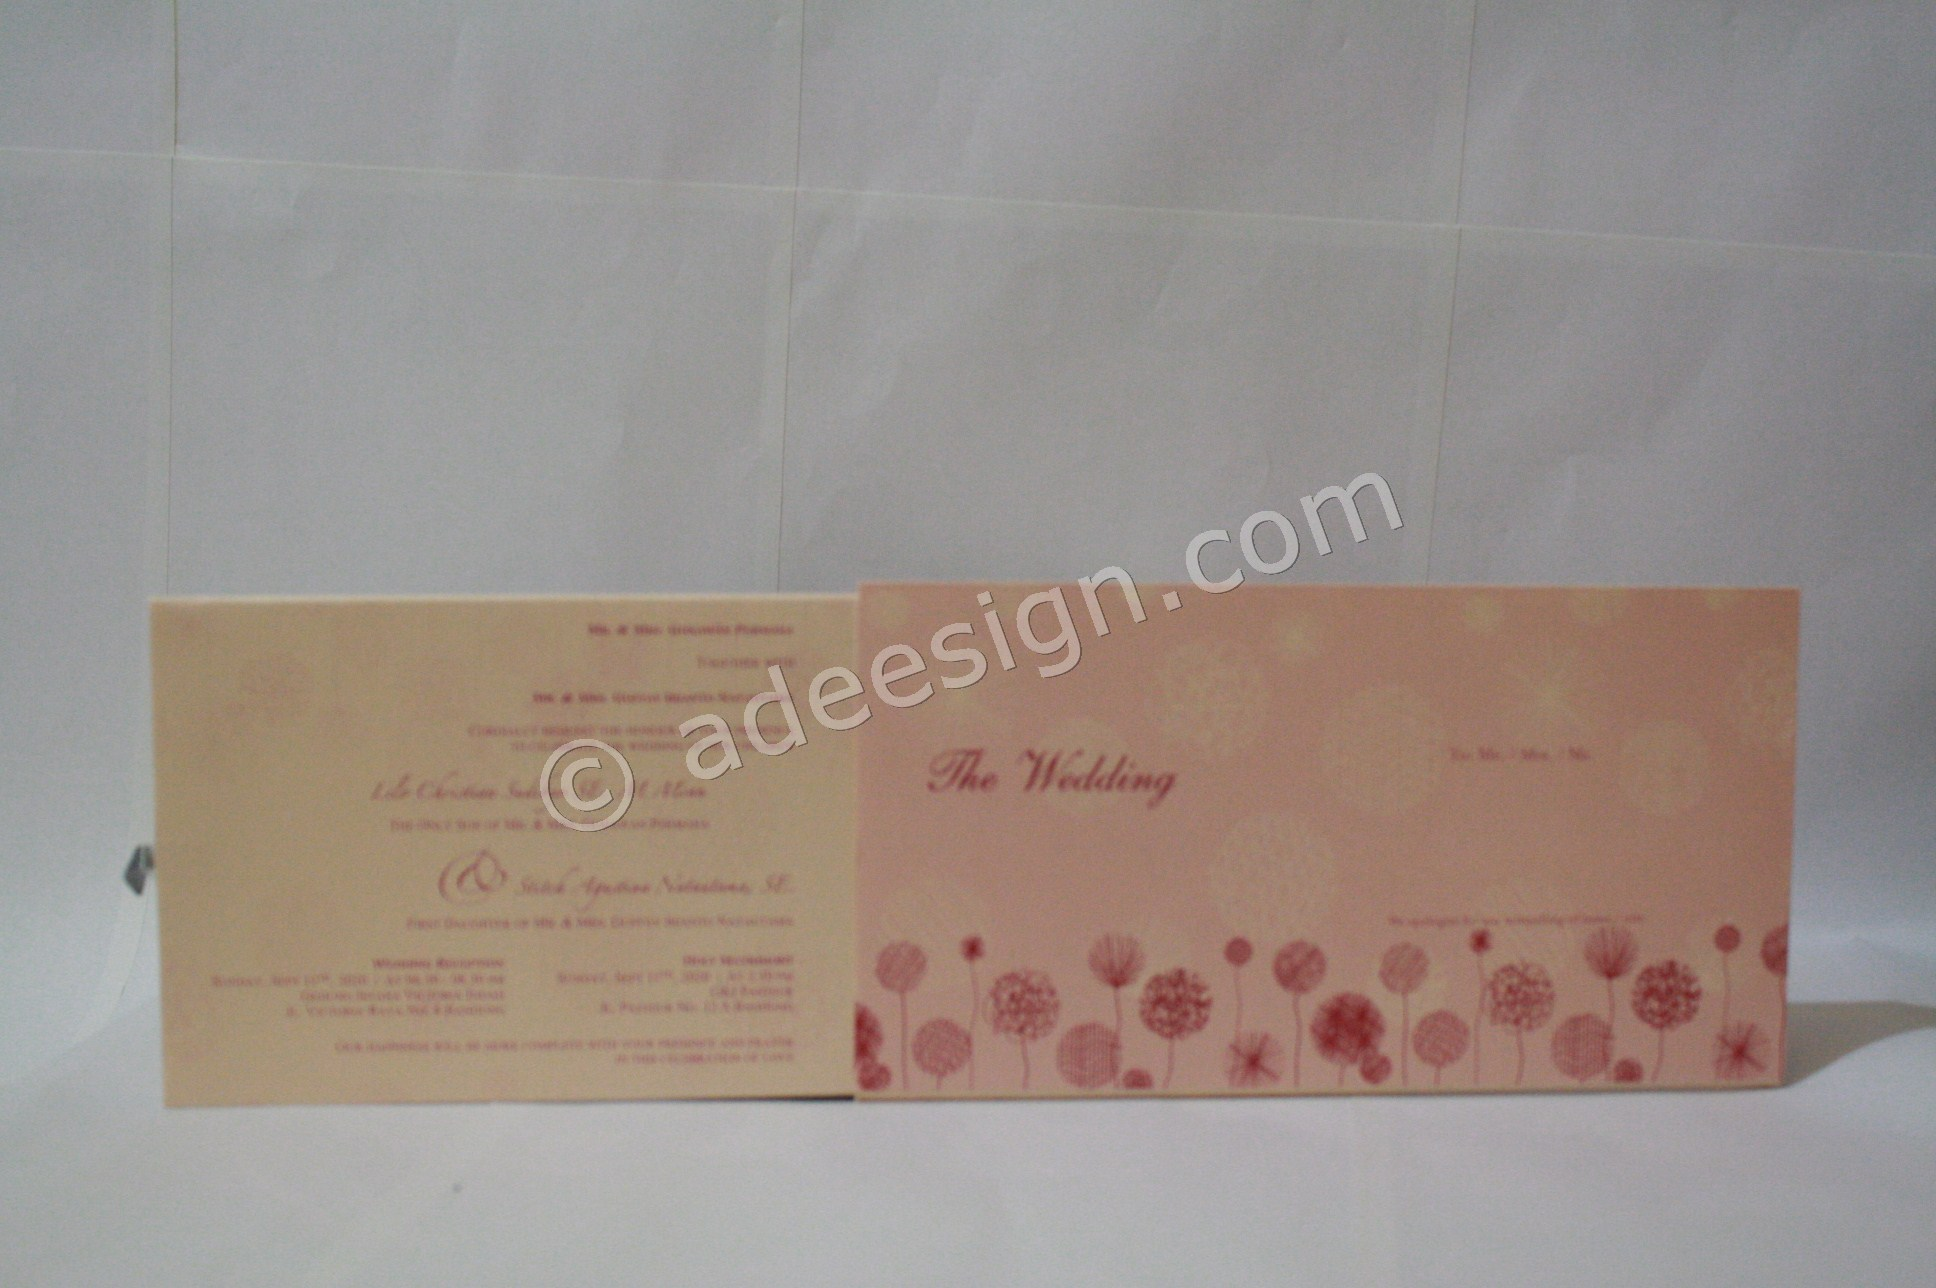 Undangan Pernikahan Hardcover ED67 3 - Tutorial Mengerjakan Wedding Invitations Simple dan Elegan